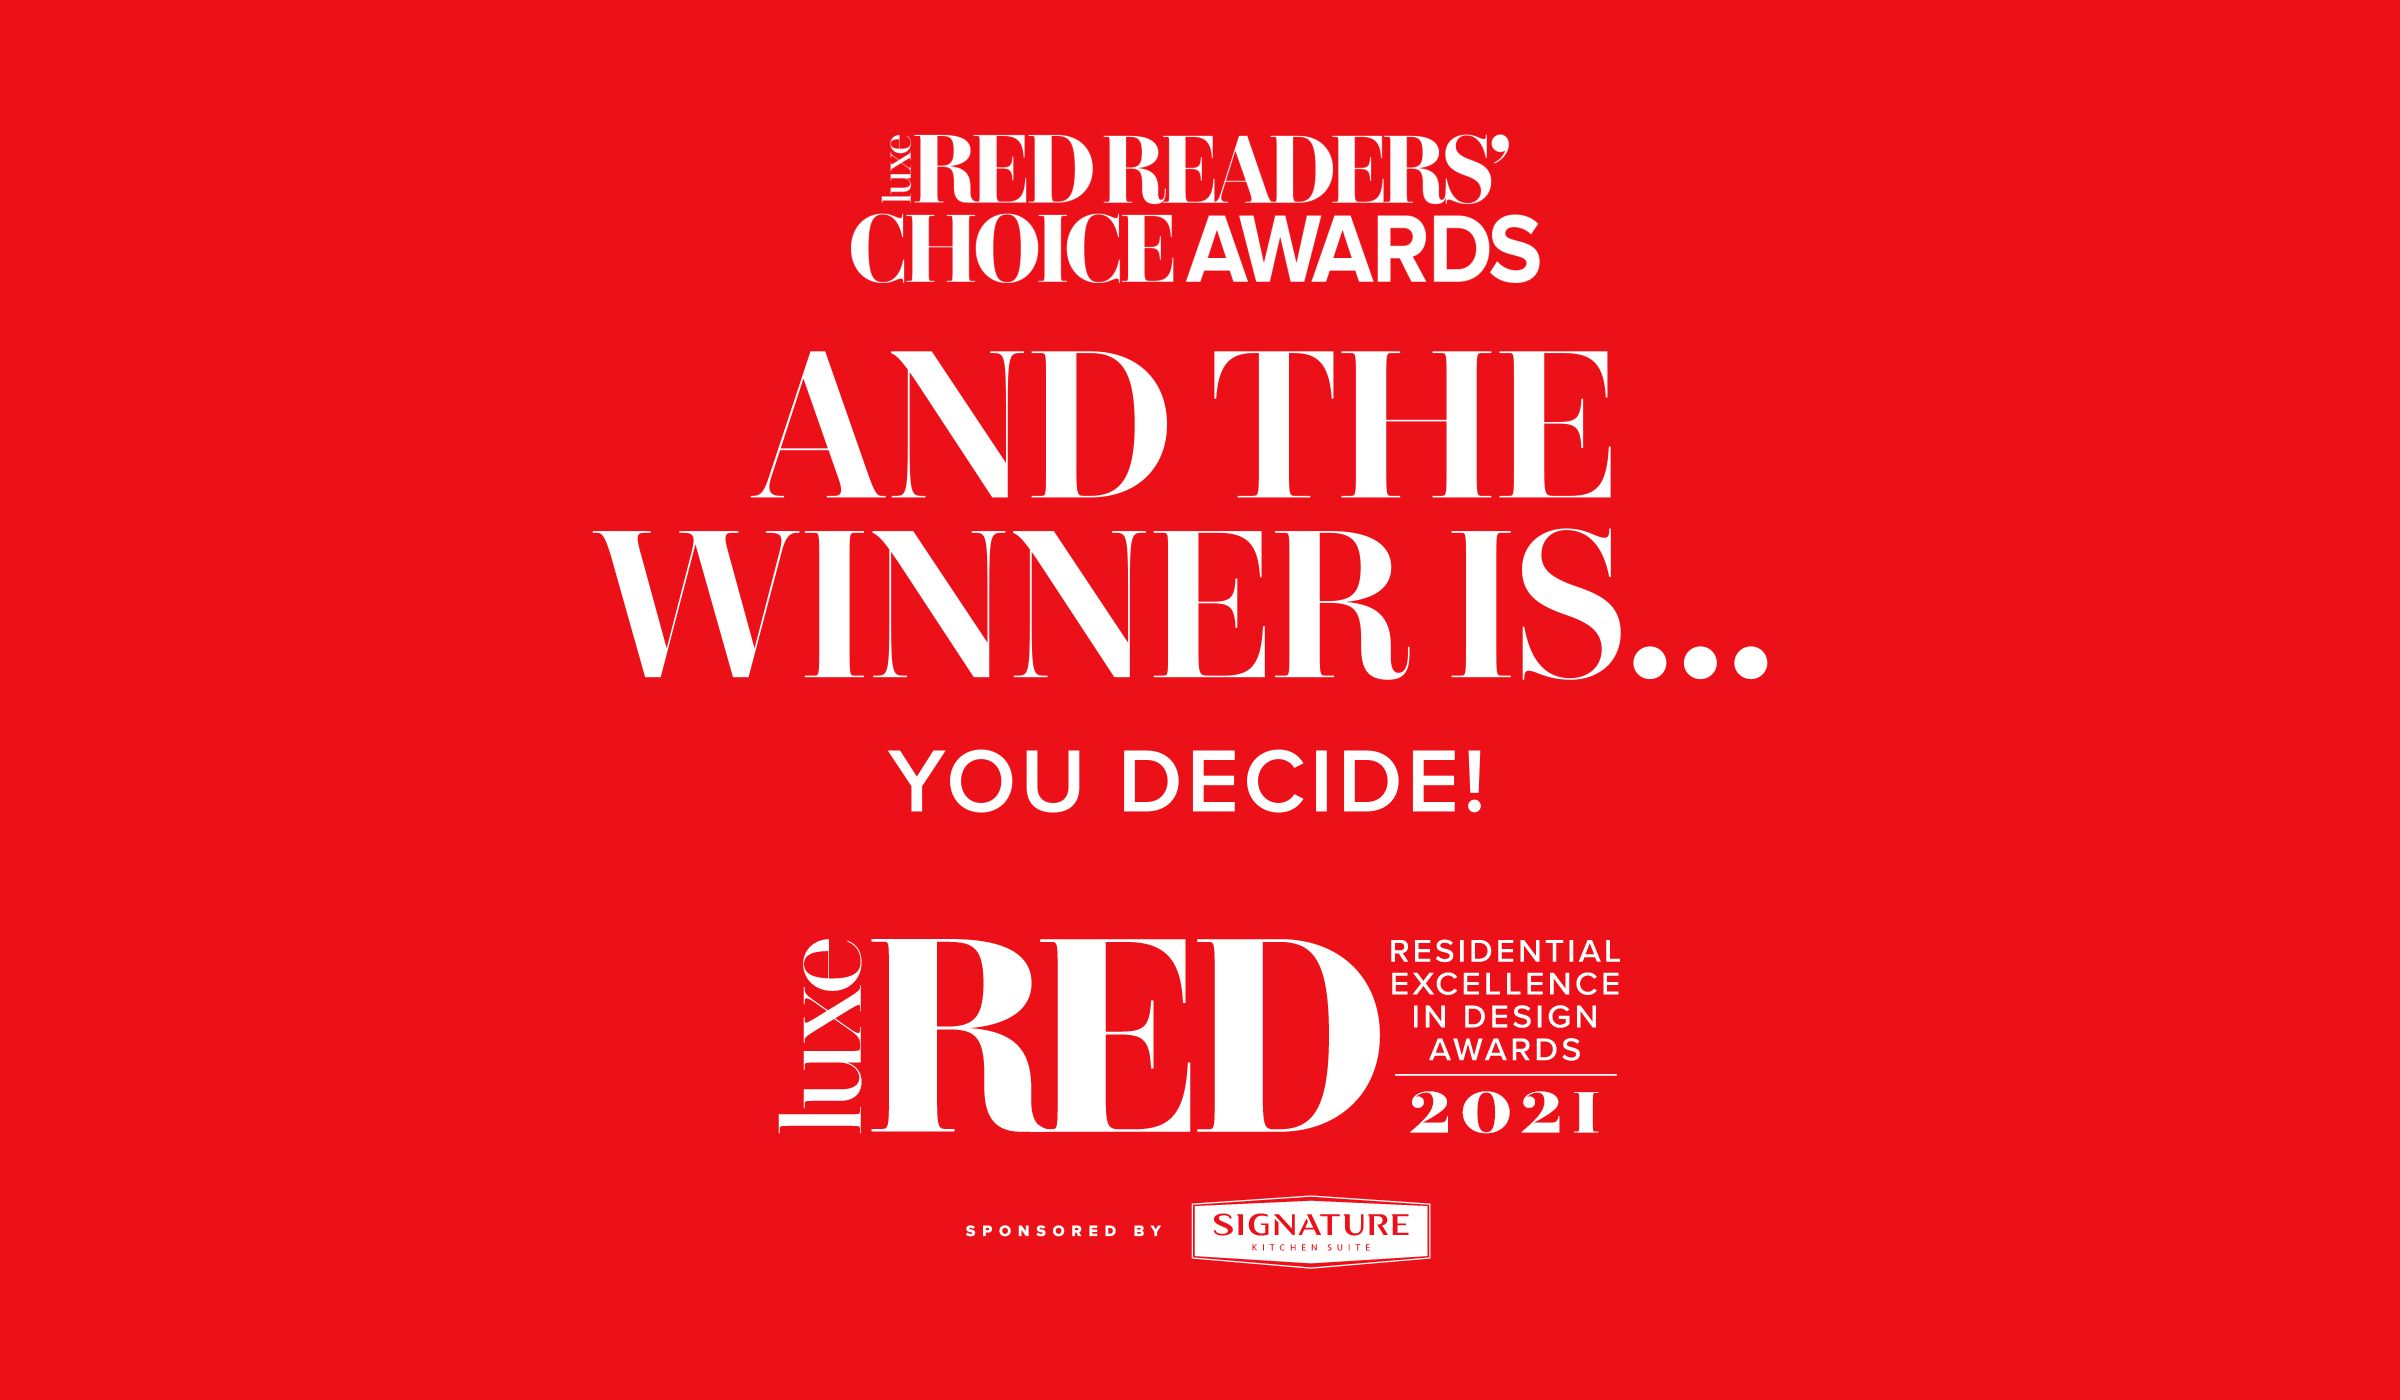 Vote For Your Favorite Designs In Our RED Readers' Choice Awards